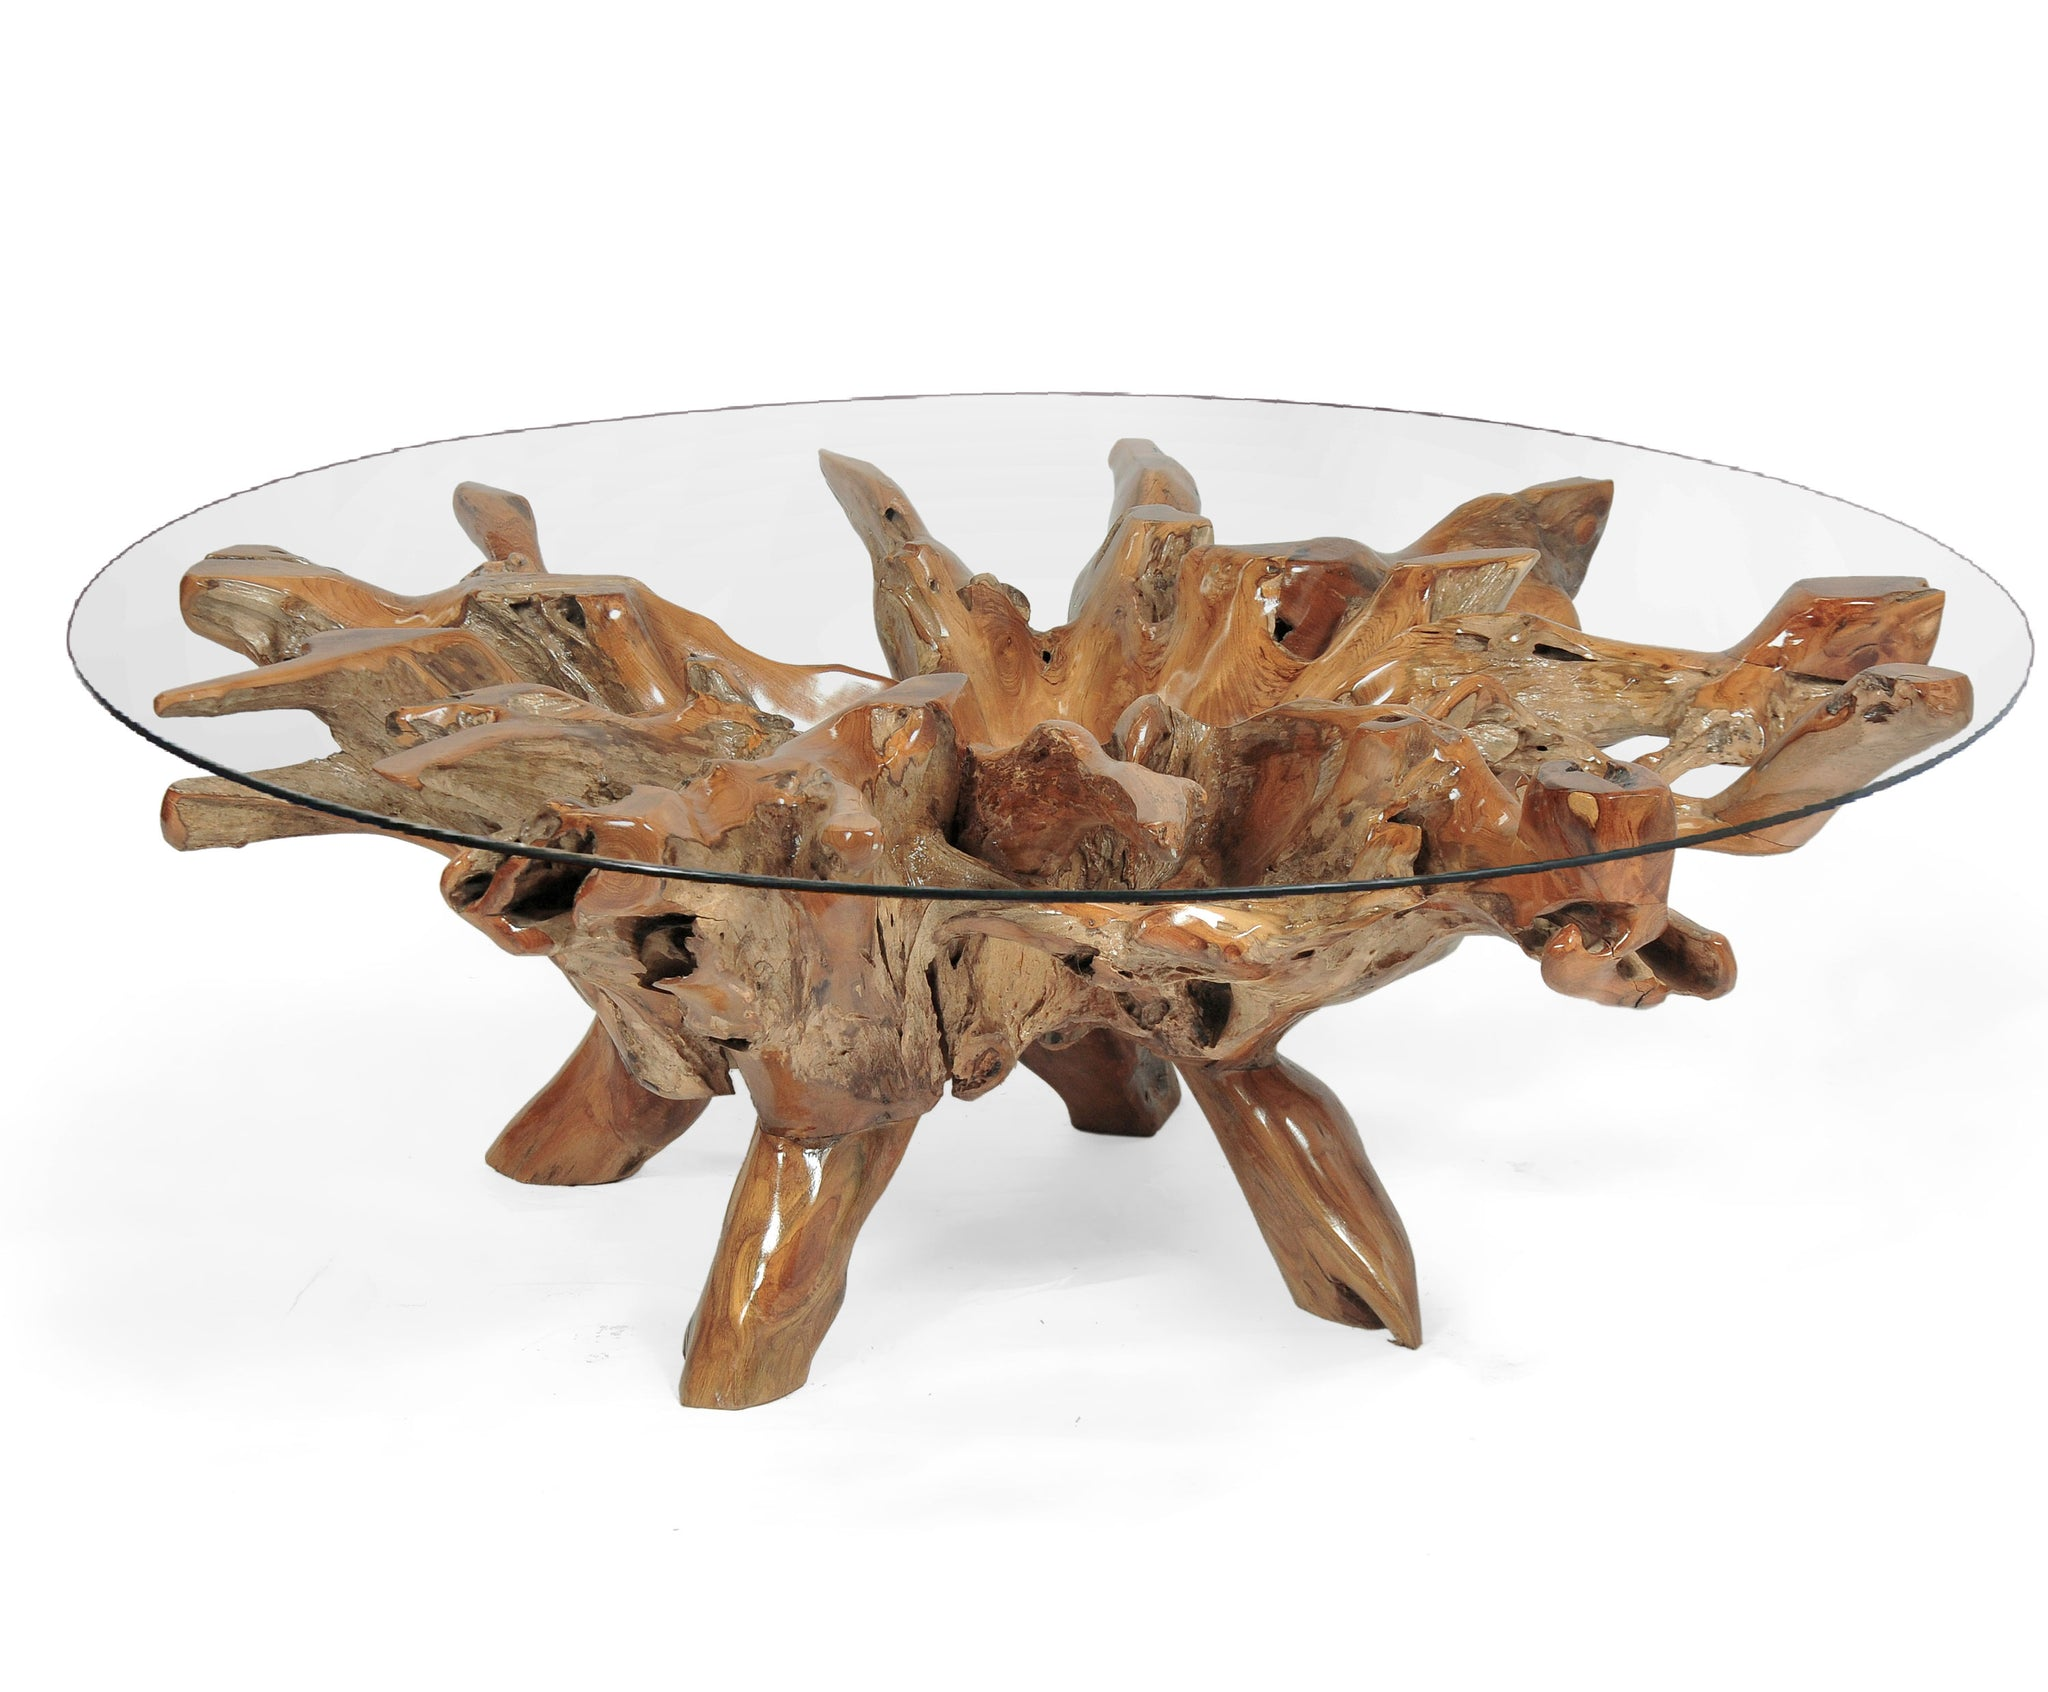 Teak Wood Root Coffee Table Including 55 Inch Round Glass